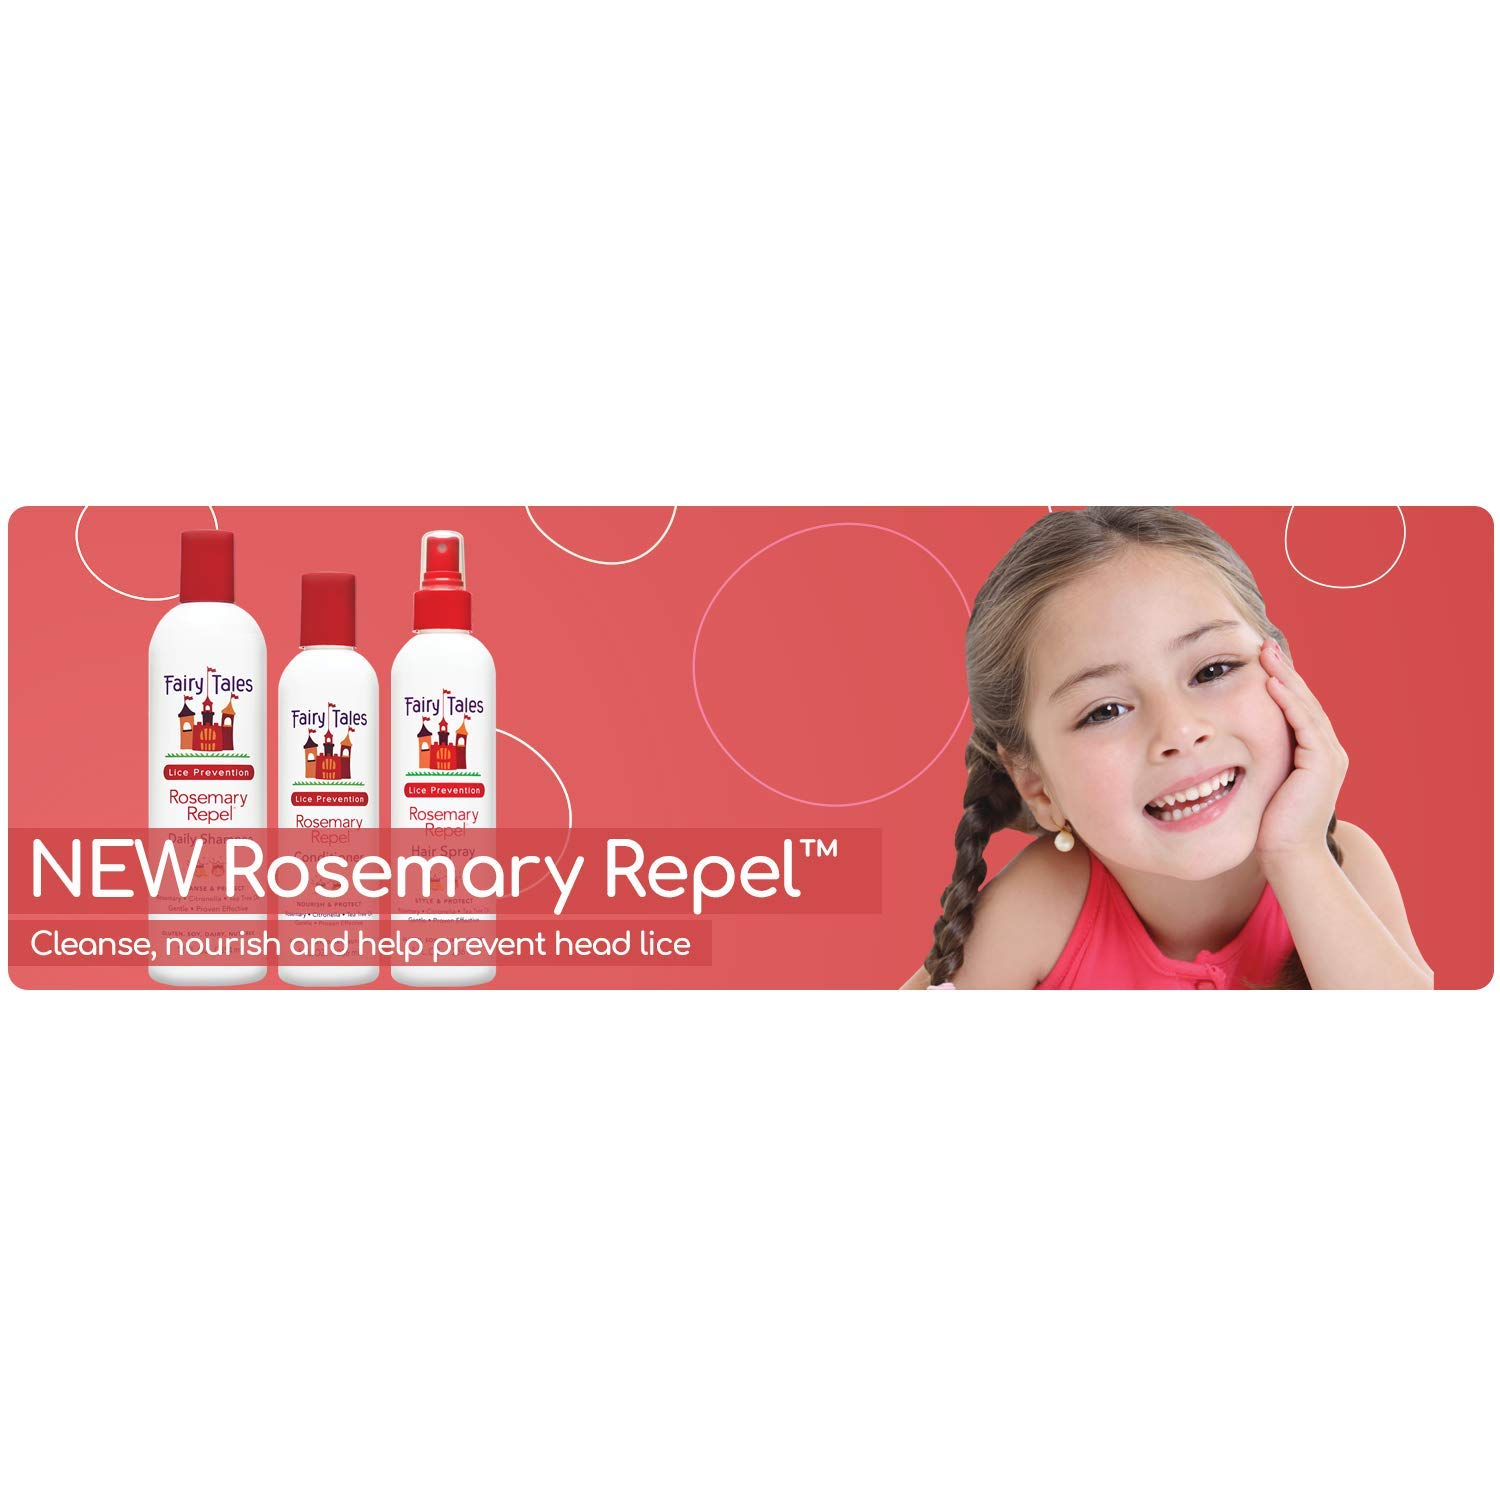 Fairy Tales Rosemary Repel Daily Kid Shampoo (32 Fl Oz) & Conditioner (32 Fl Oz) Duo for Lice Prevention, Combo Pack by Fairy Tales